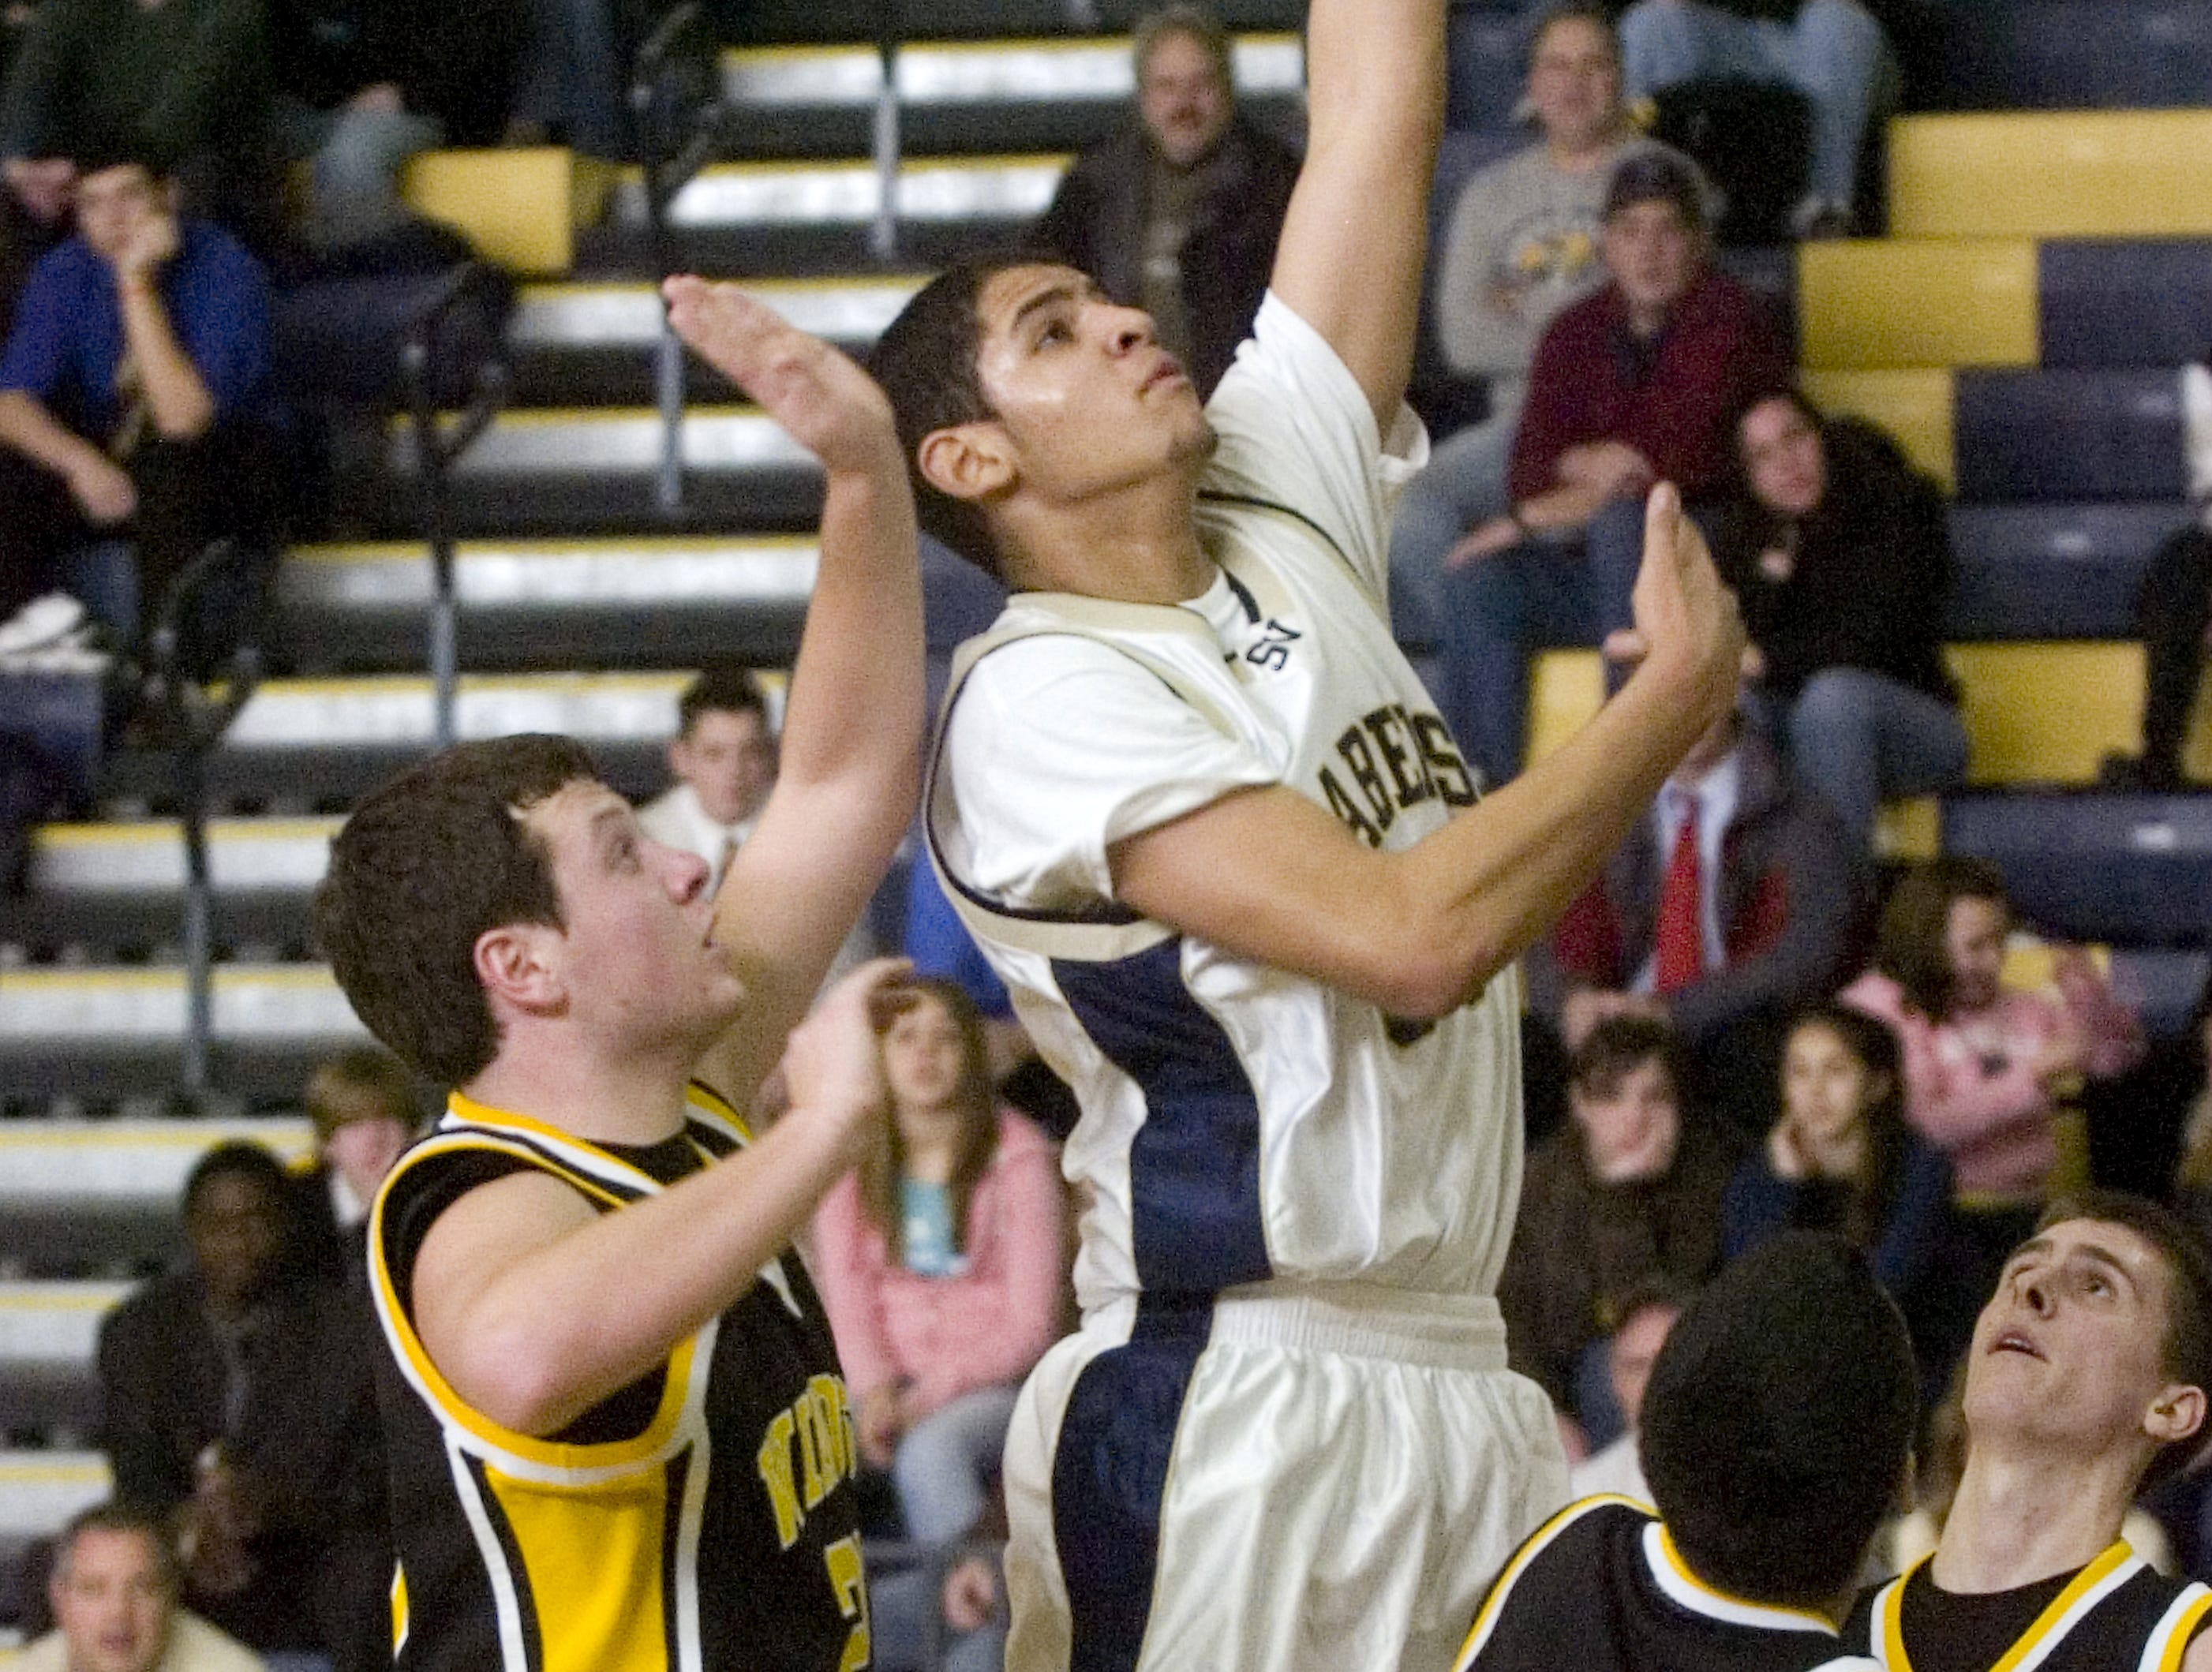 2009: Susquehanna Valley's Matt Cornwell slips by Windsor's Paul Gordon, left, for a lay up in the first quarter of Saturday's game at SV.